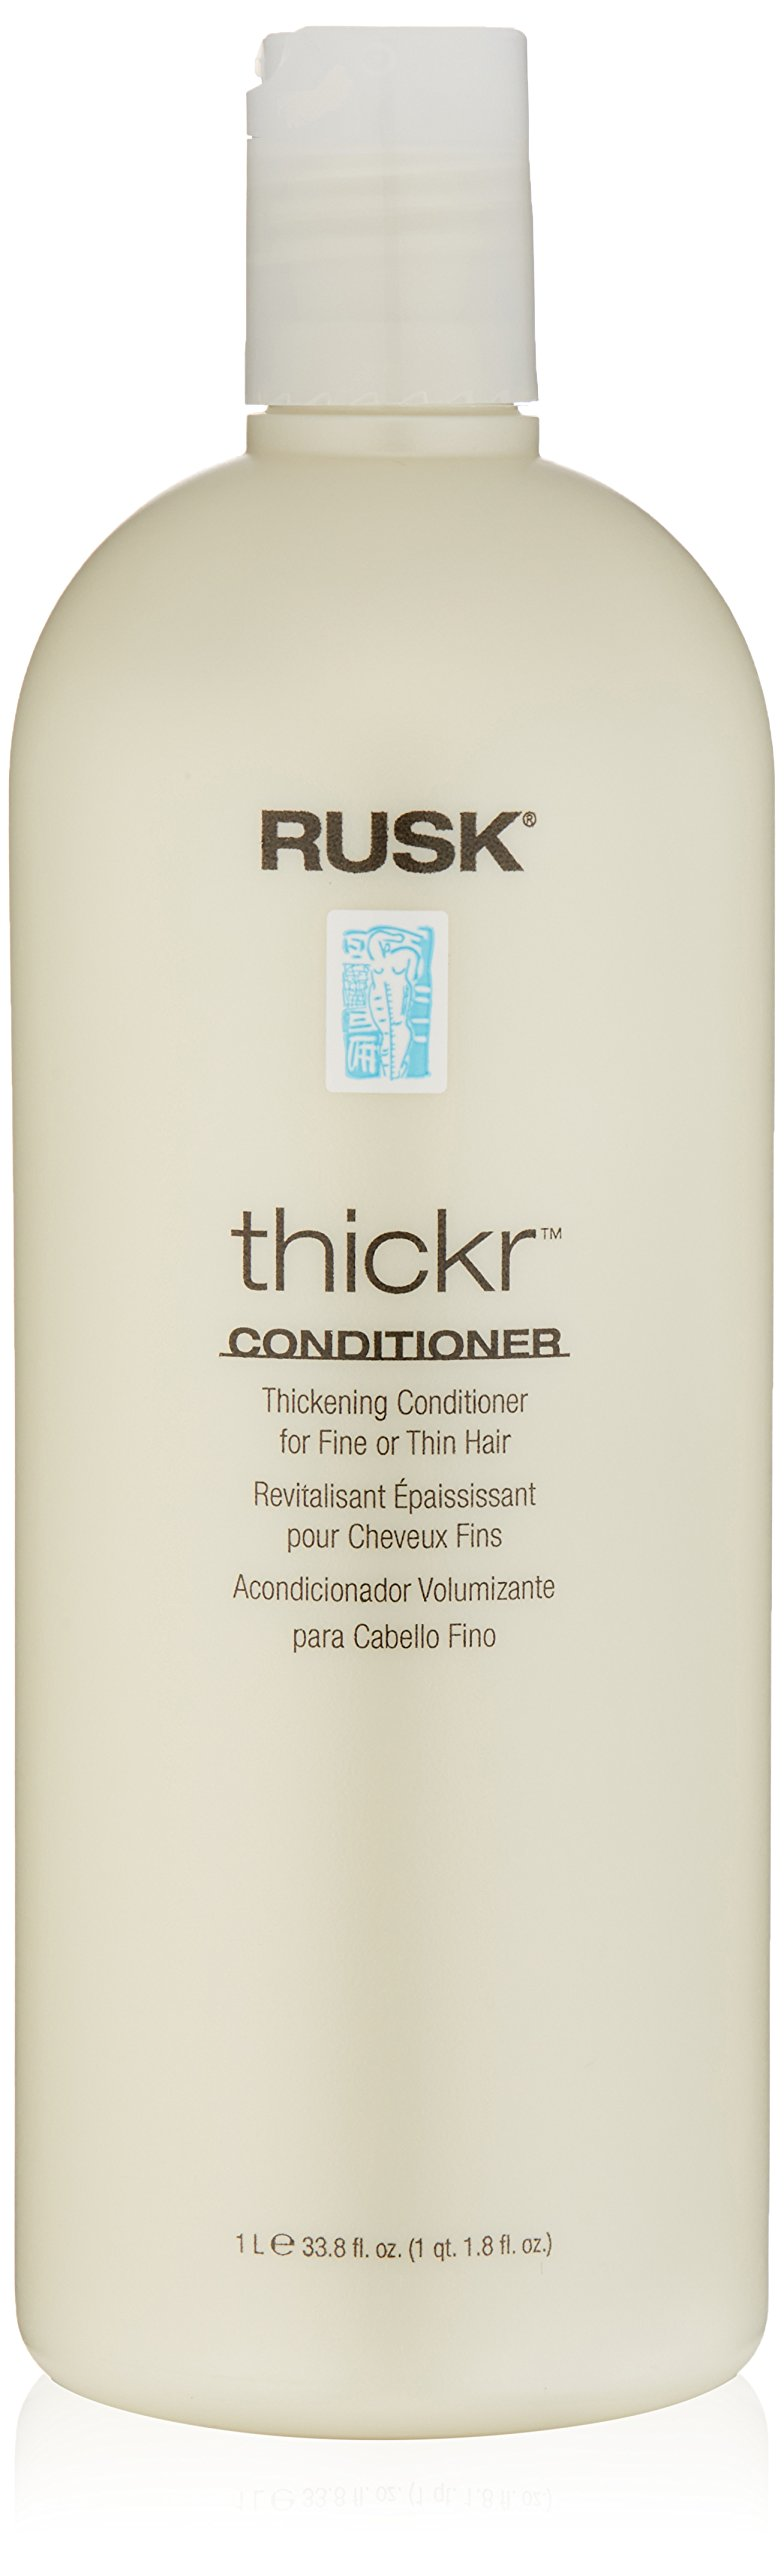 Rusk Thickr Thickening Conditioner (For Fine or Thin Hair) 1000ml